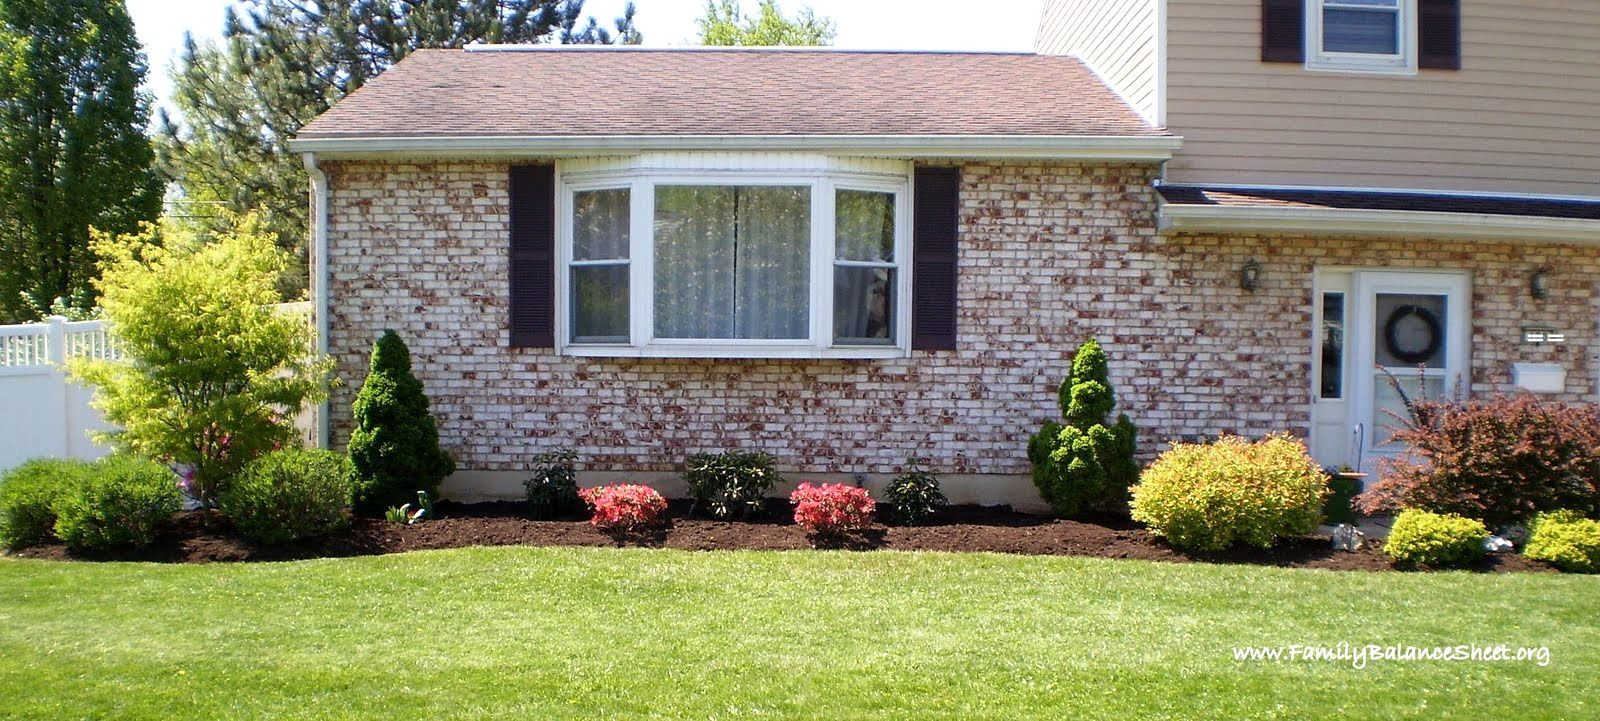 Landscaping ideas front yard ranch style home front yard for Home landscaping ideas